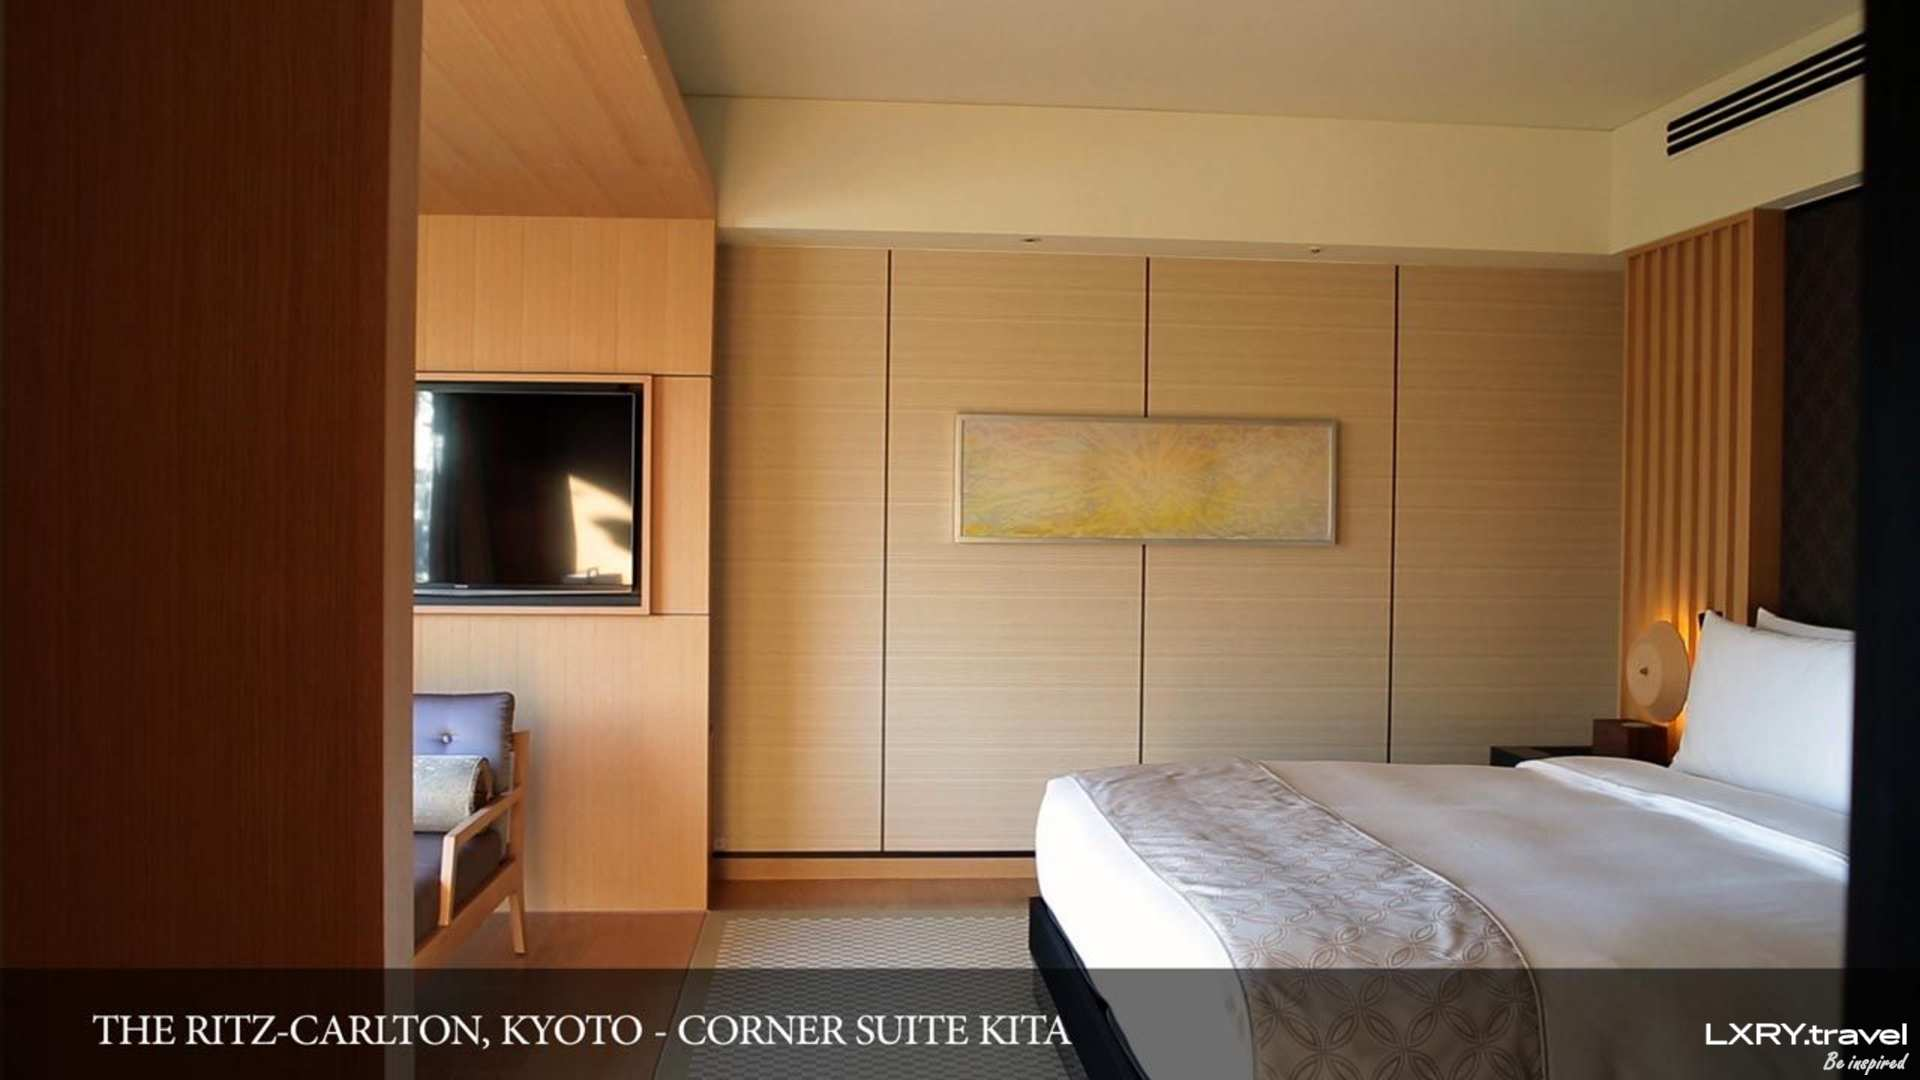 The Ritz-Carlton, Kyoto 57/68